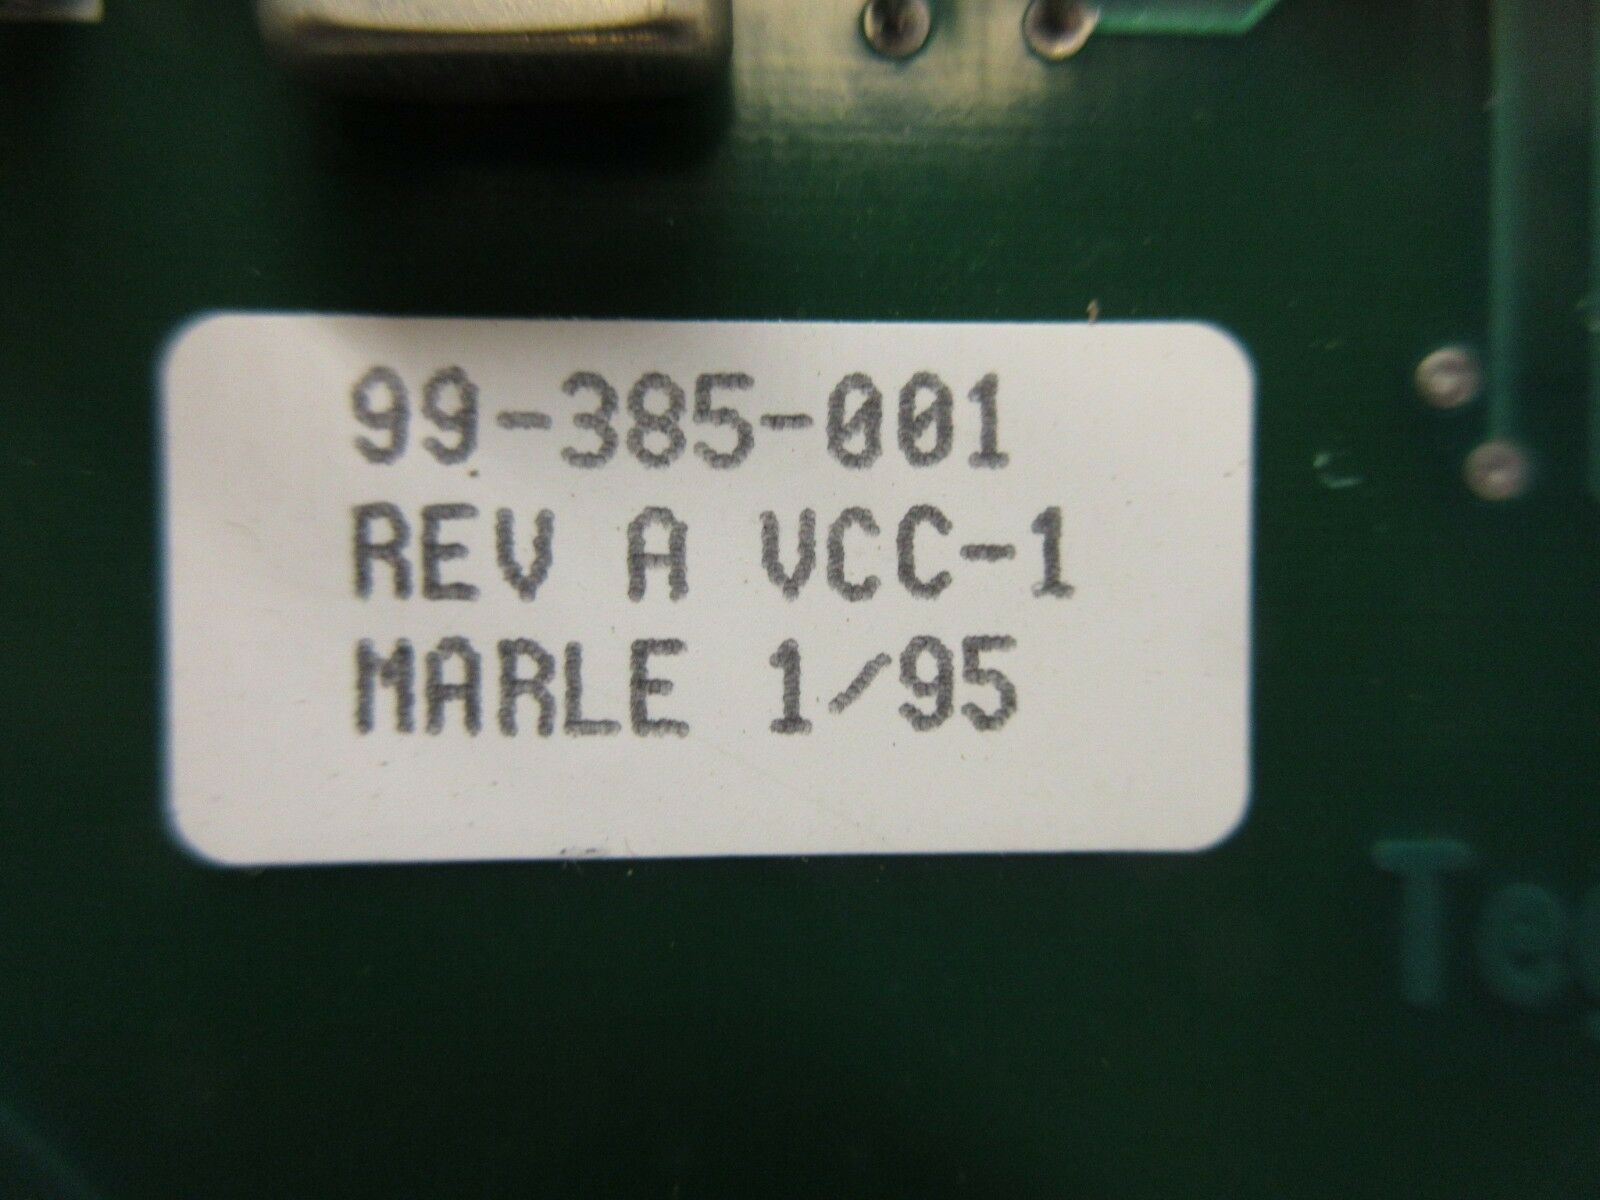 Tegal 99-385-001 DC/DC Converter Board PCB Rev. A 6500 HRe Dual Frequency Used